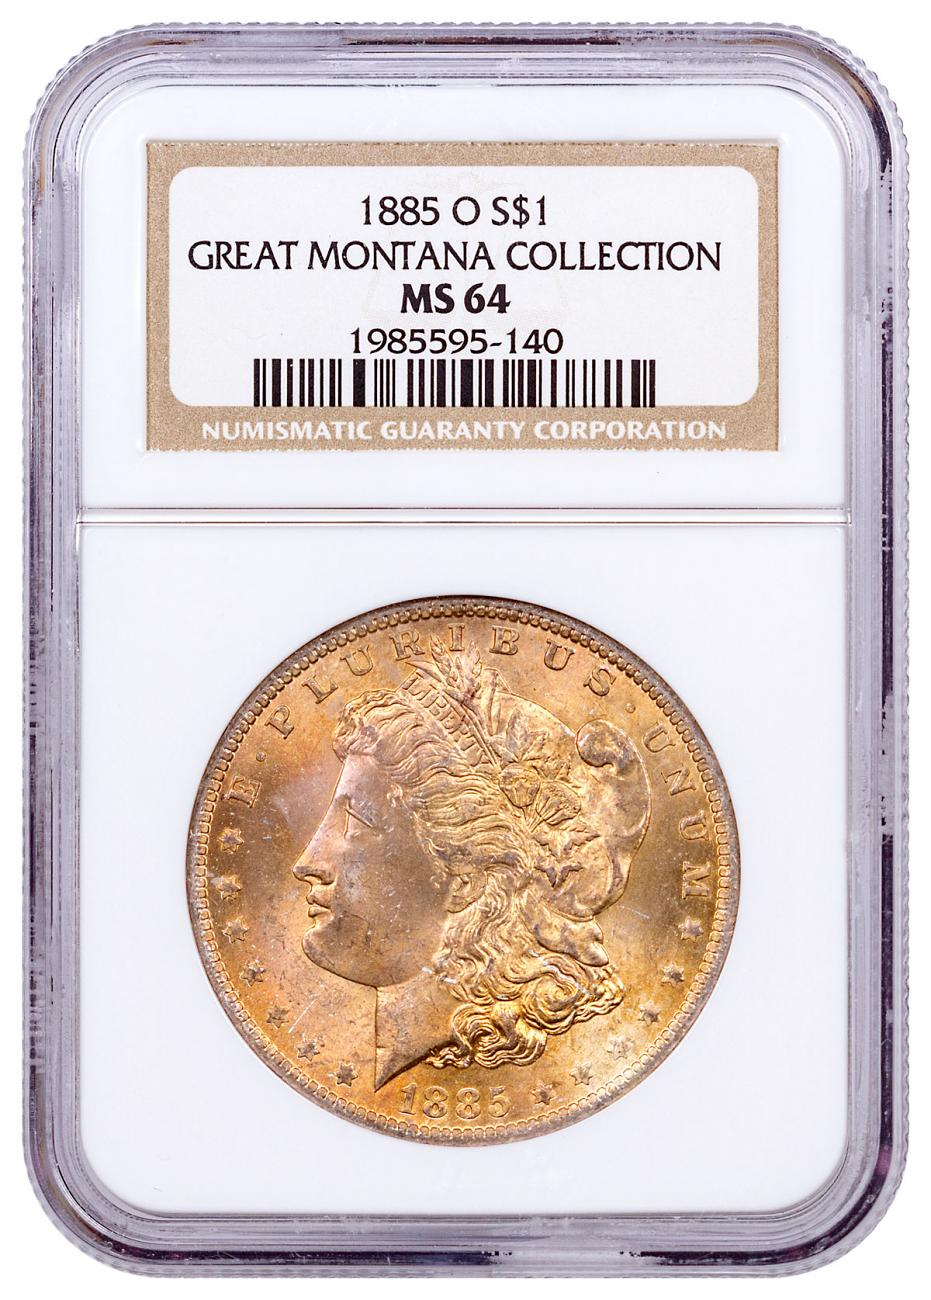 1885-O Morgan Silver Dollar From the Great Montana Collection NGC MS64 CPCR 5140